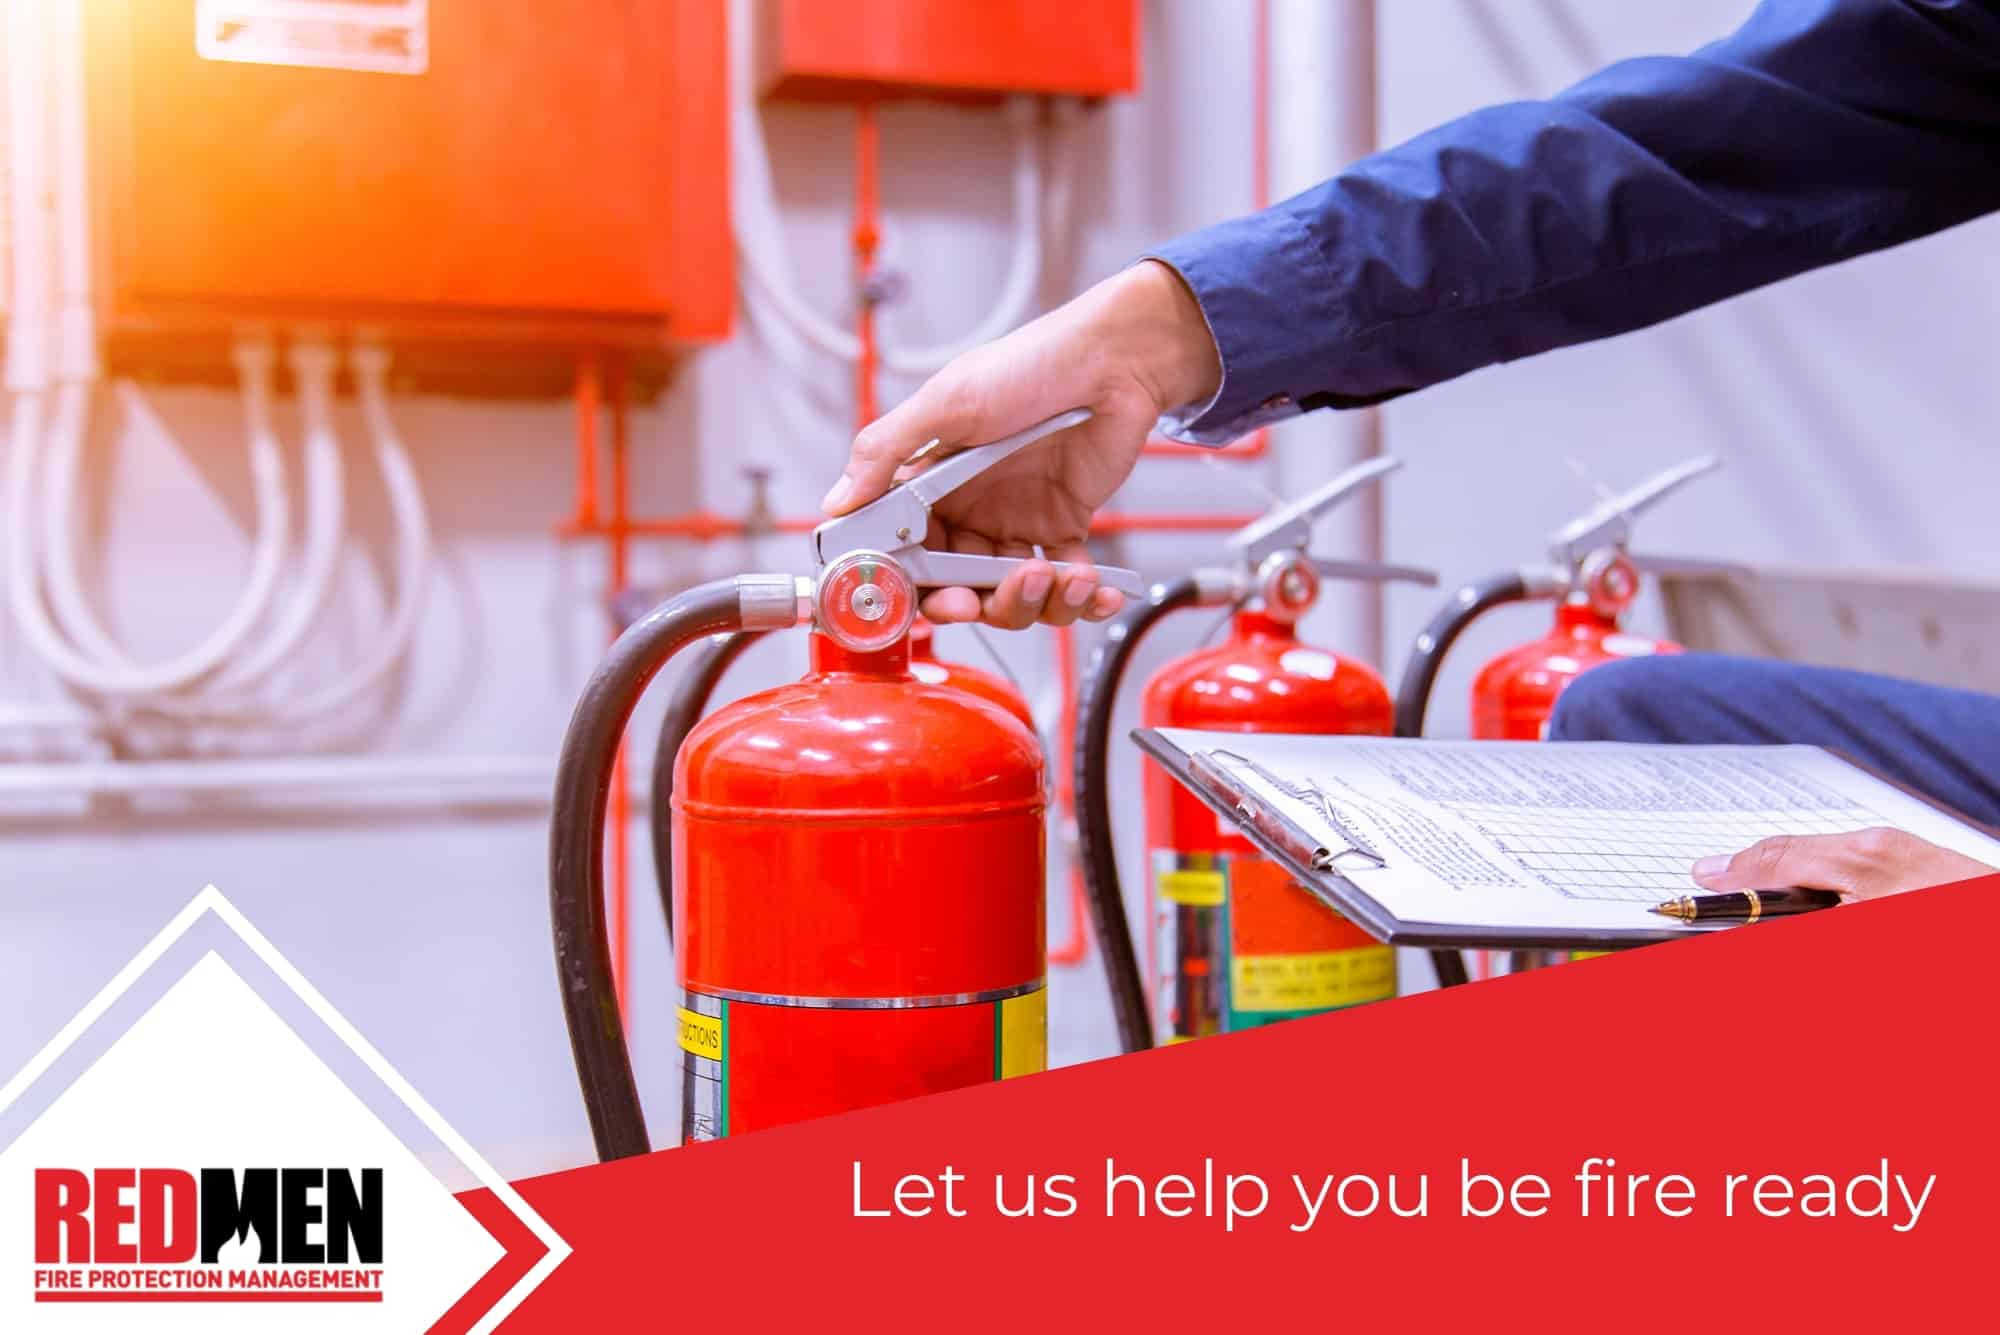 Let us help you be fire ready